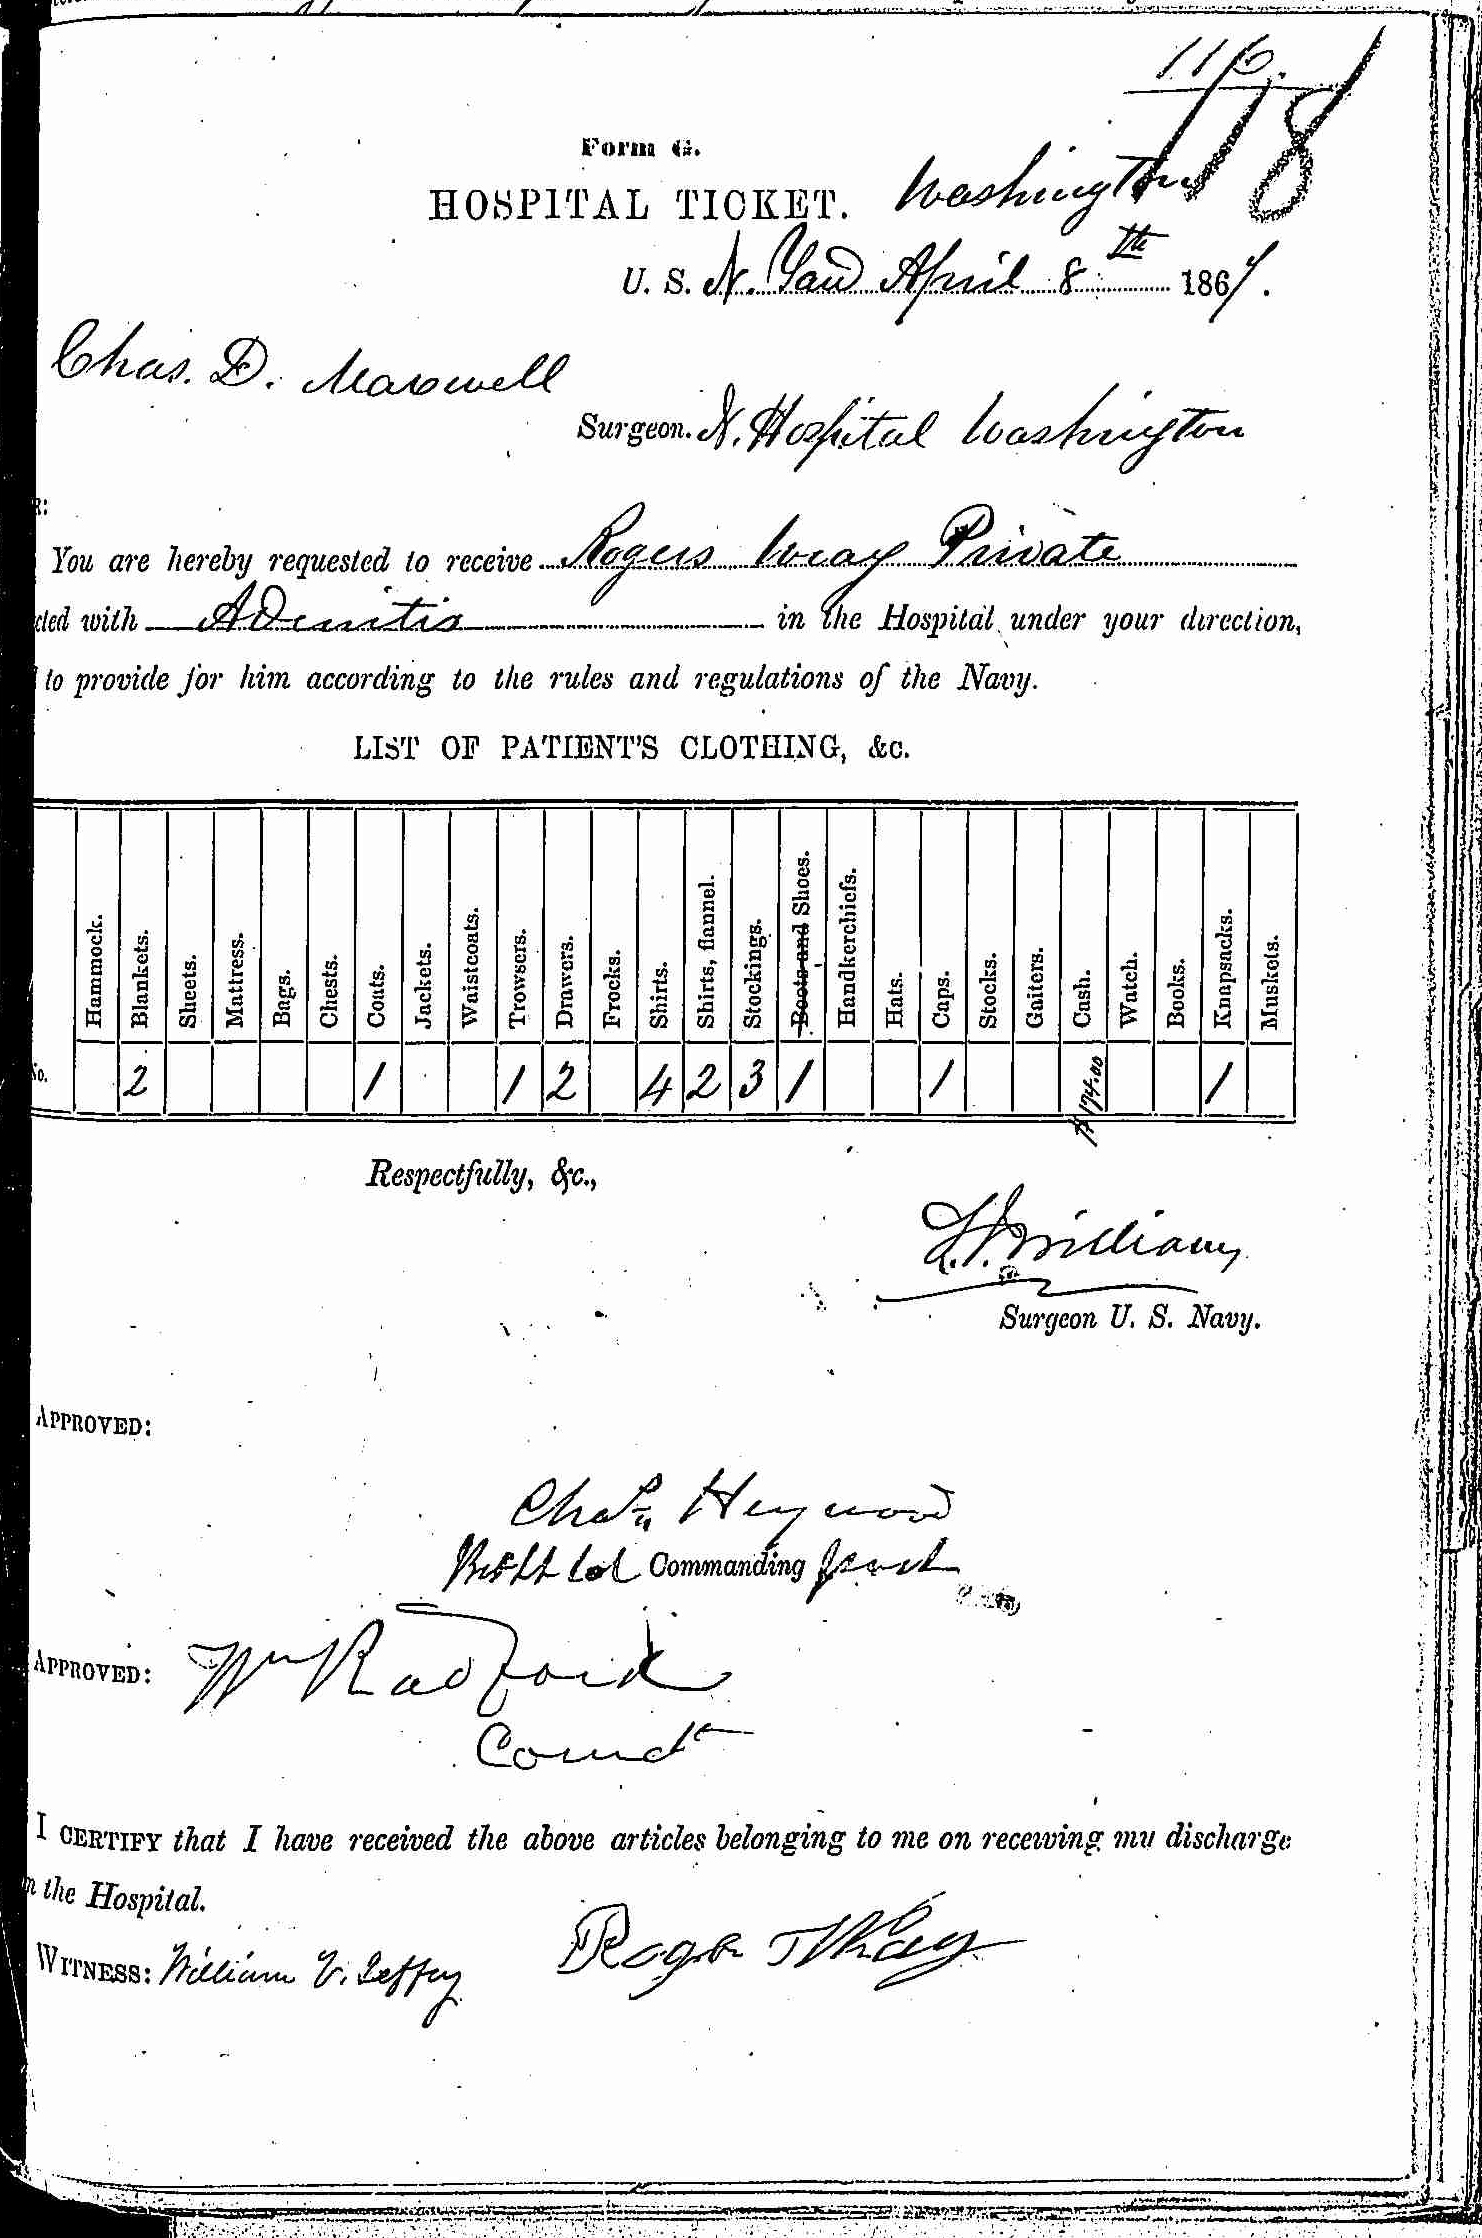 Entry for Rogers Wray (first admission page 1 of 2) in the log Hospital Tickets and Case Papers - Naval Hospital - Washington, D.C. - 1866-68